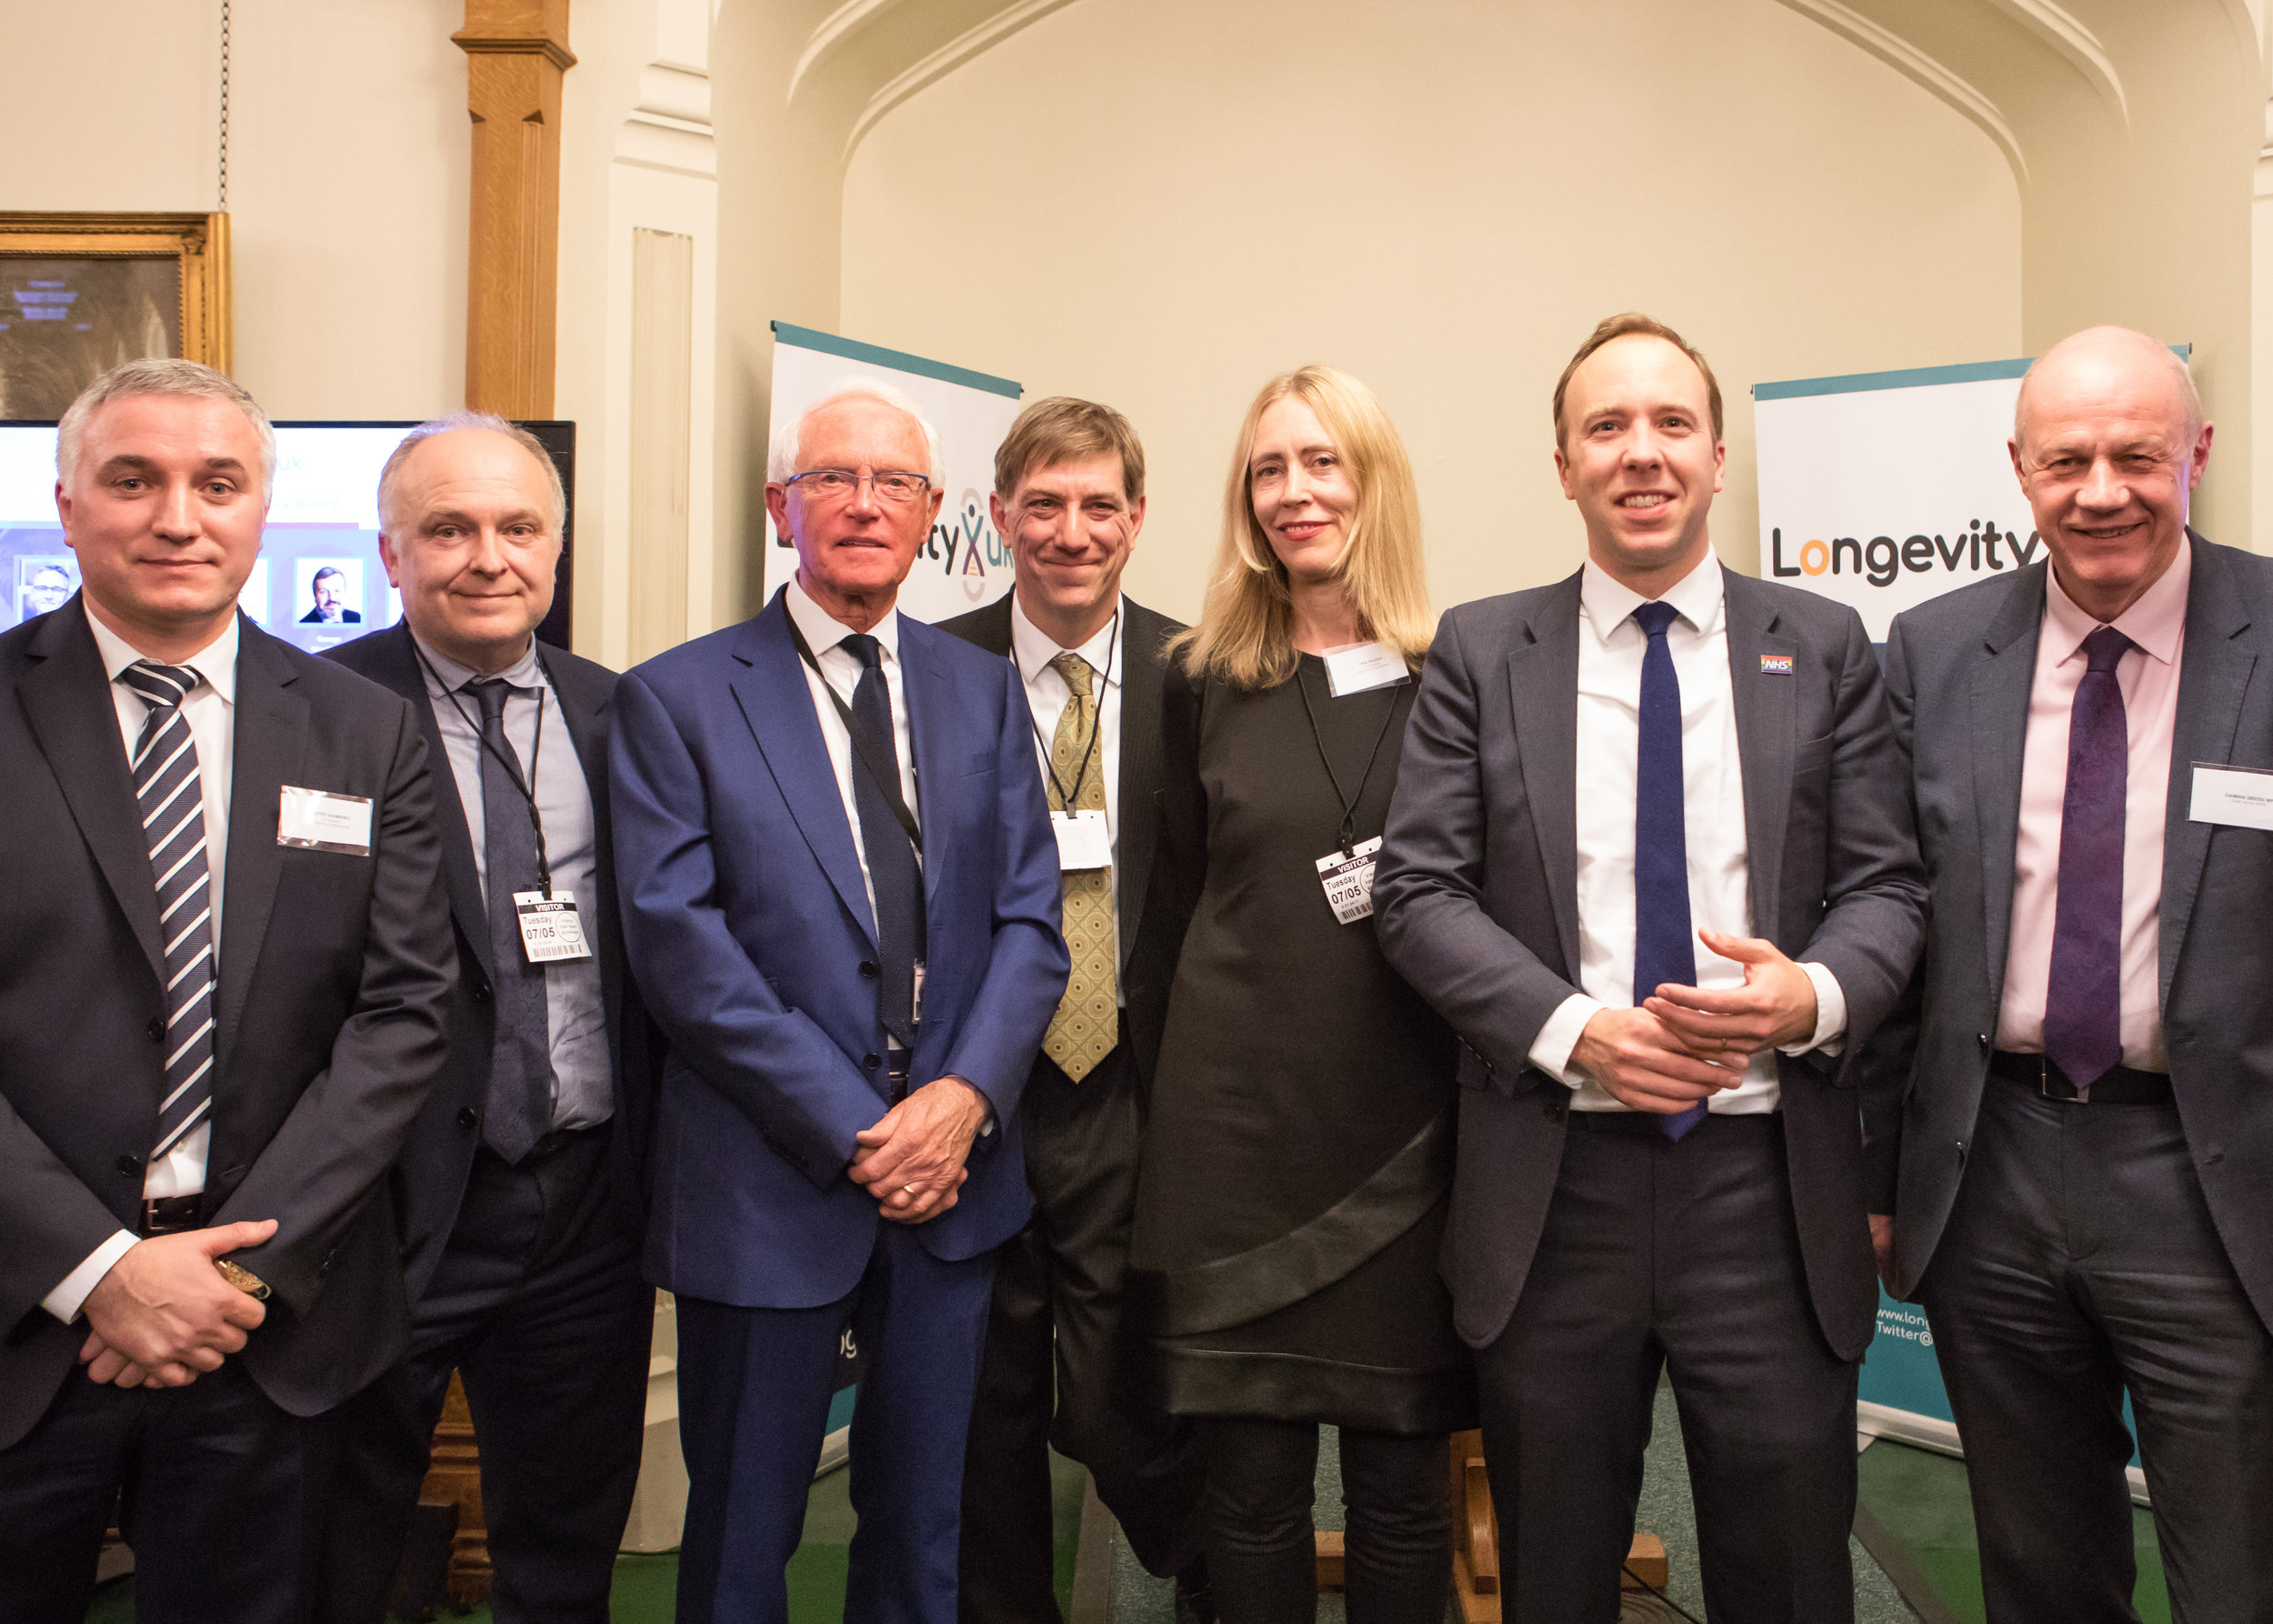 Launch of APPG for Longevity, House of Commons, 7 May 2019   The Secretariat with Rt Hon Damian Green MP (APPG Chair), The Lord Filkin CBE (Advisory Board Chair), Professor Andrew Scott (Advisory Board Member) and Rt Hon Matt Hancock MP, Secretary of State for Health and Social Care